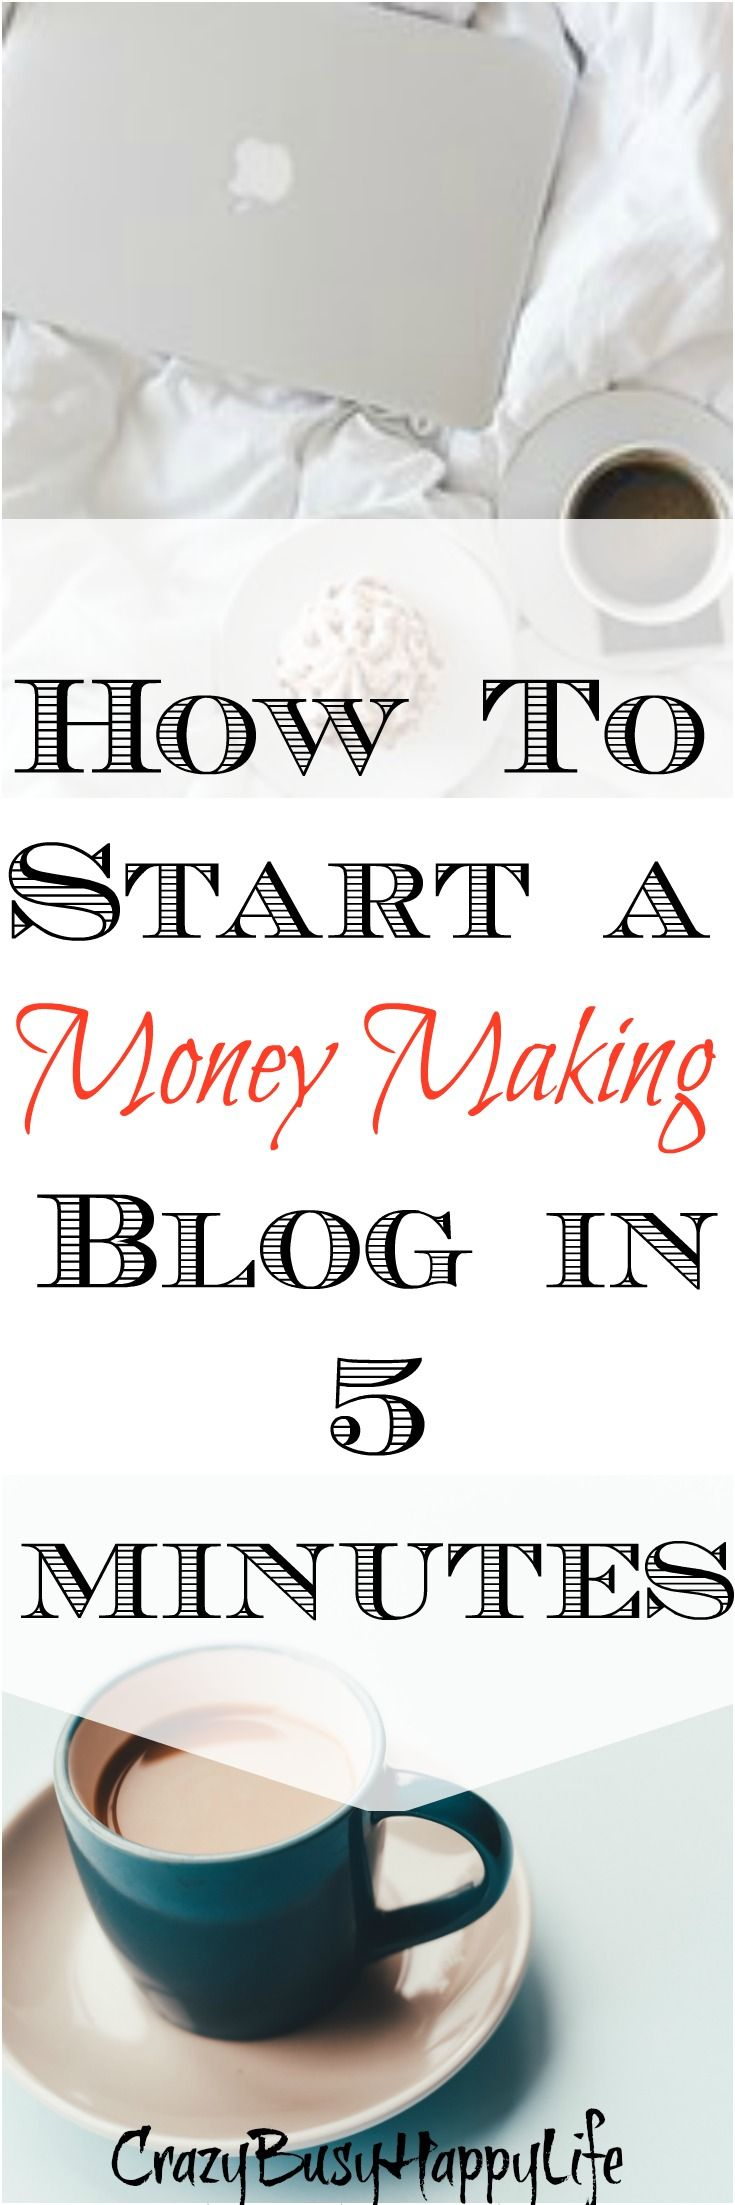 Blogging is the ultimate side hustle. It doesn't take a lot of time and it's a great way to make money from home. It's perfect for people working a nine to five or busy moms. Start your own money making blog in a few minutes.